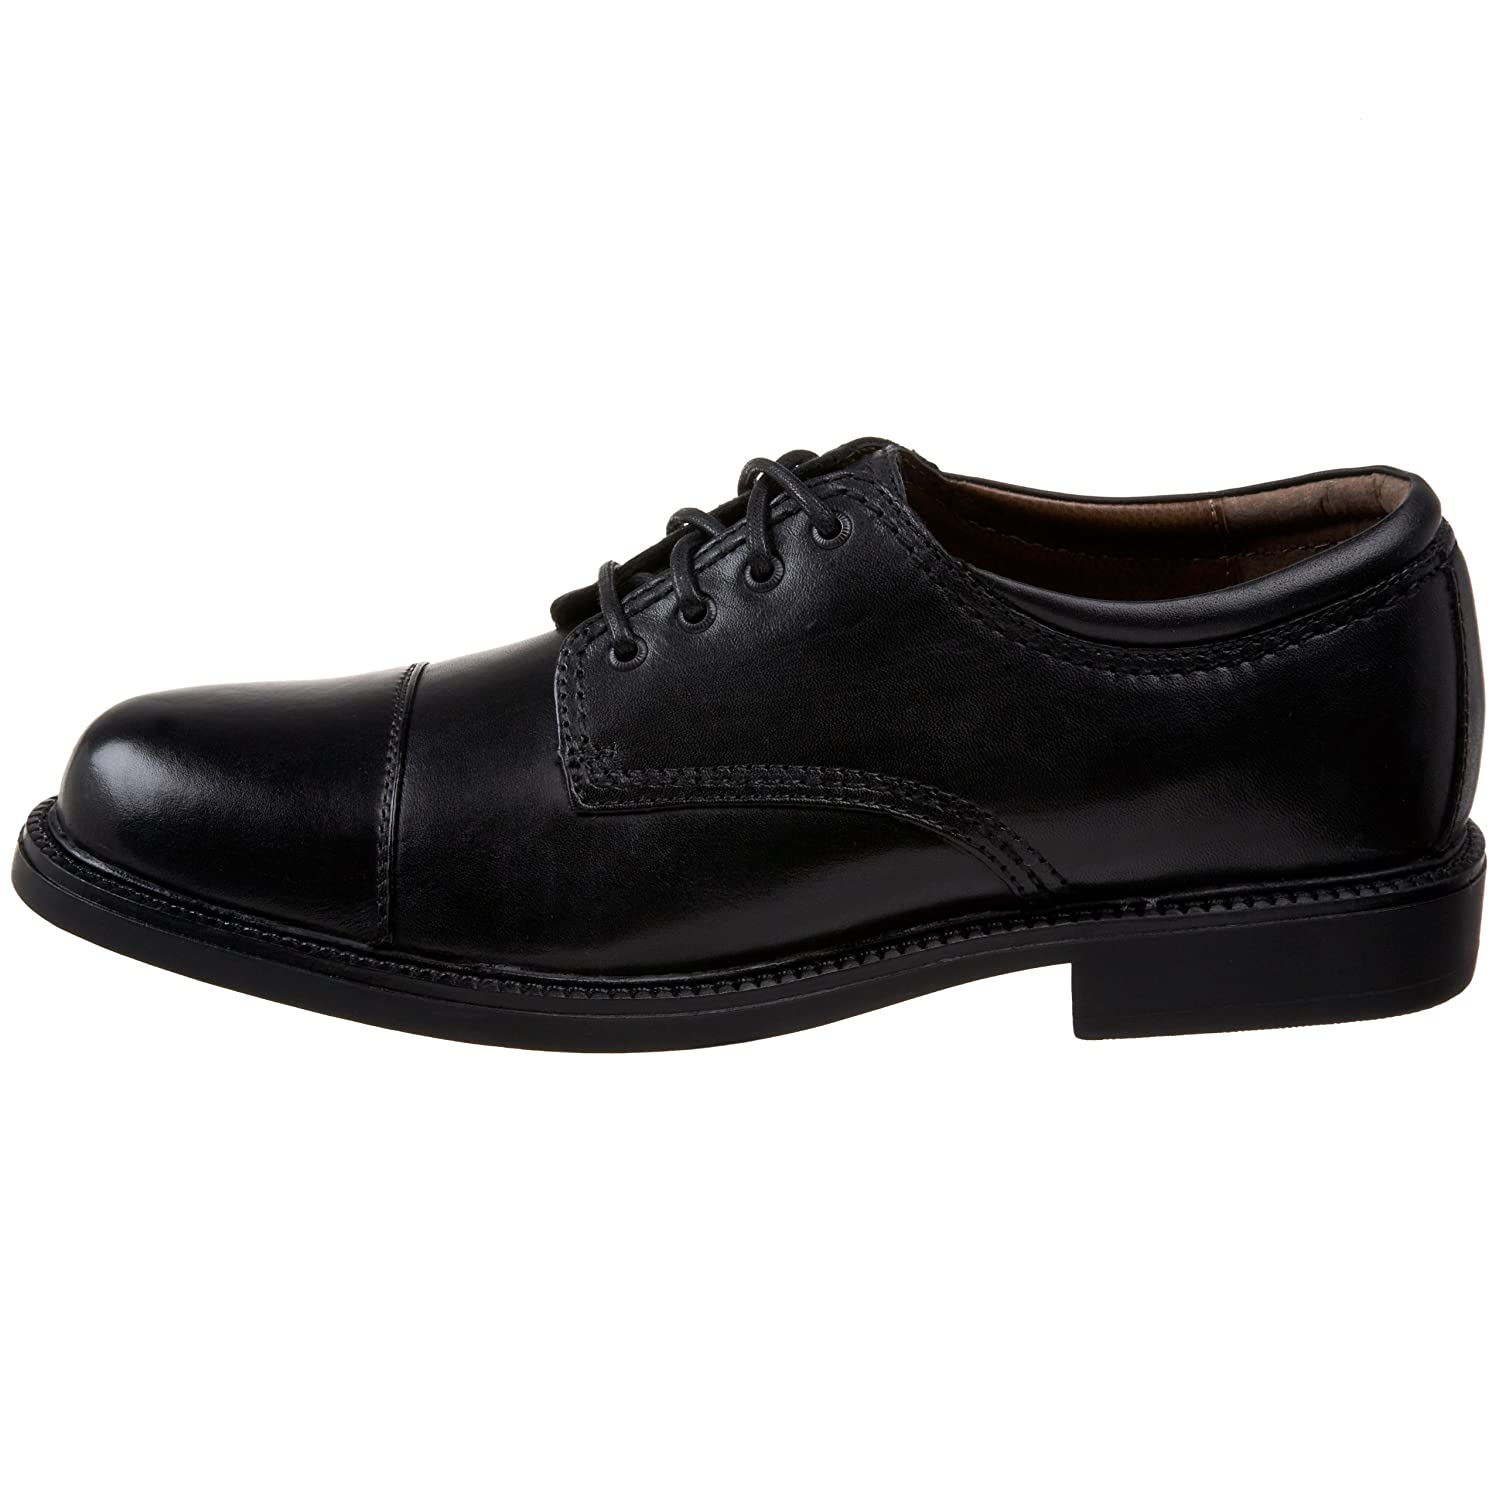 Best Work Shoe Brand For Working In Retail